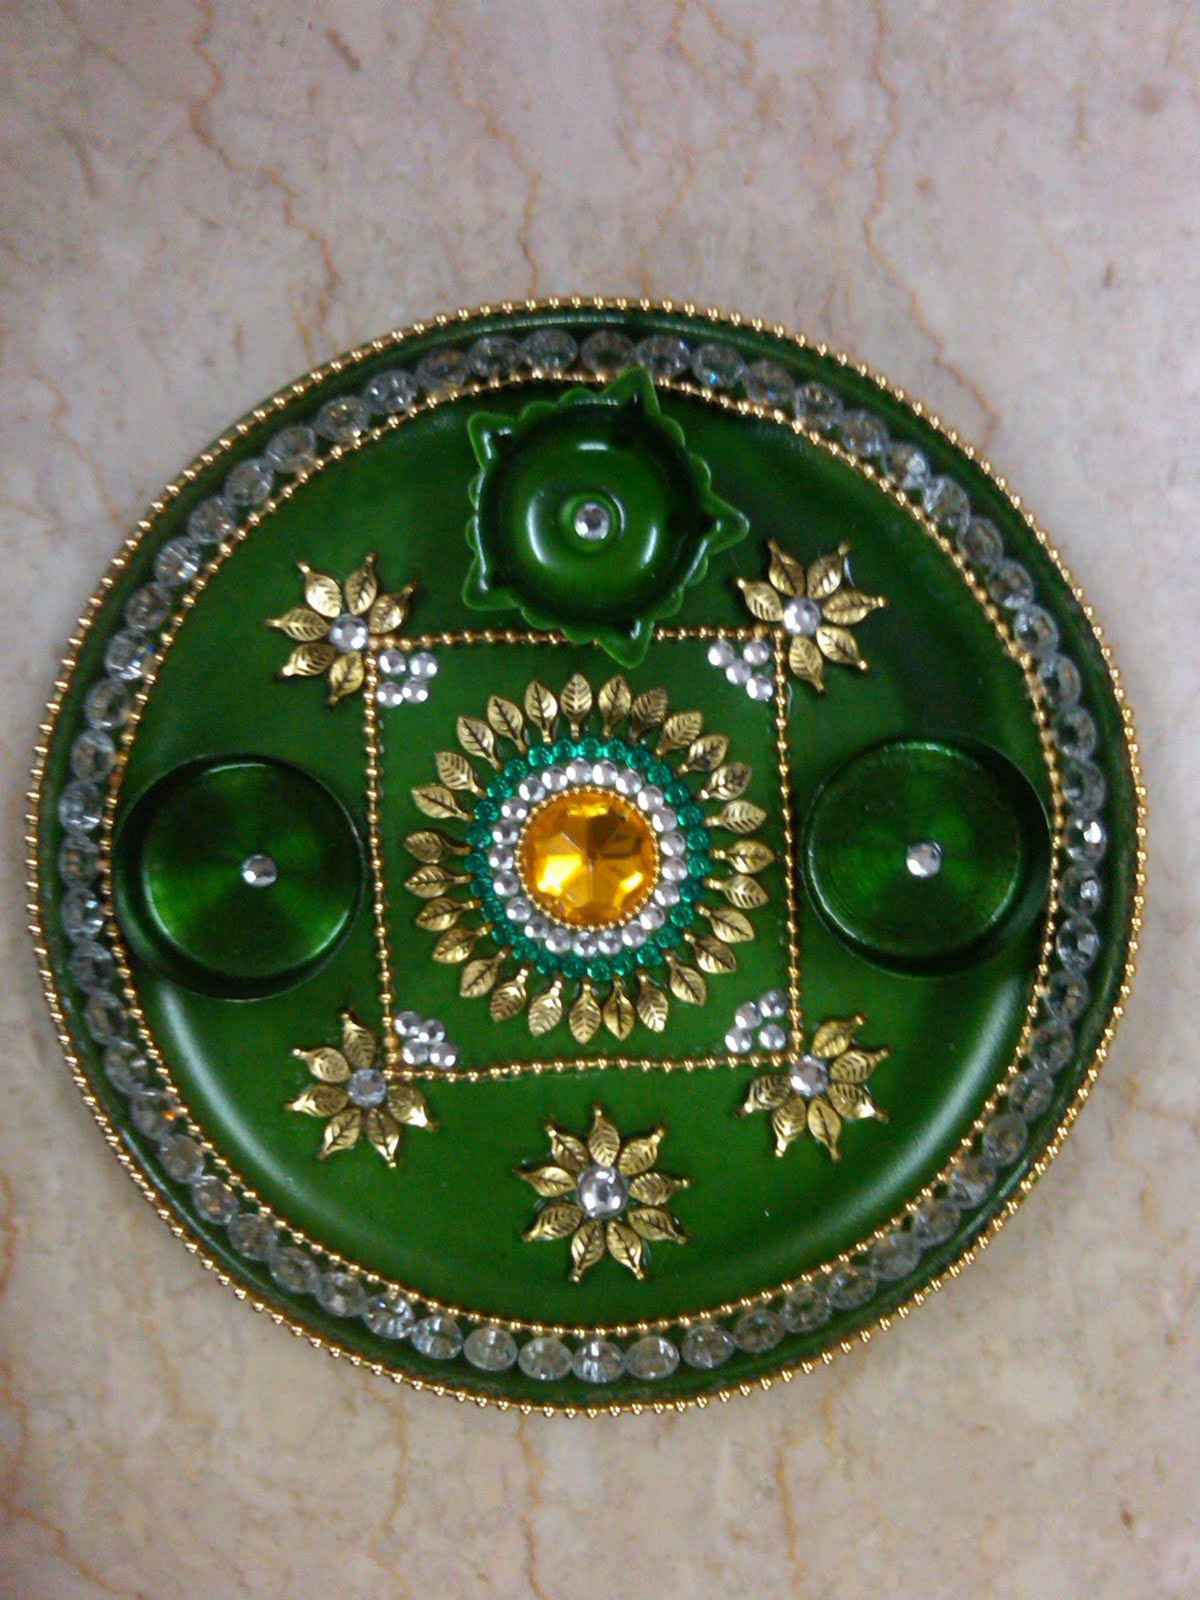 Ranjana arts www ranjanaarts com aarti thali pooja thali for Aarti thali decoration with flowers